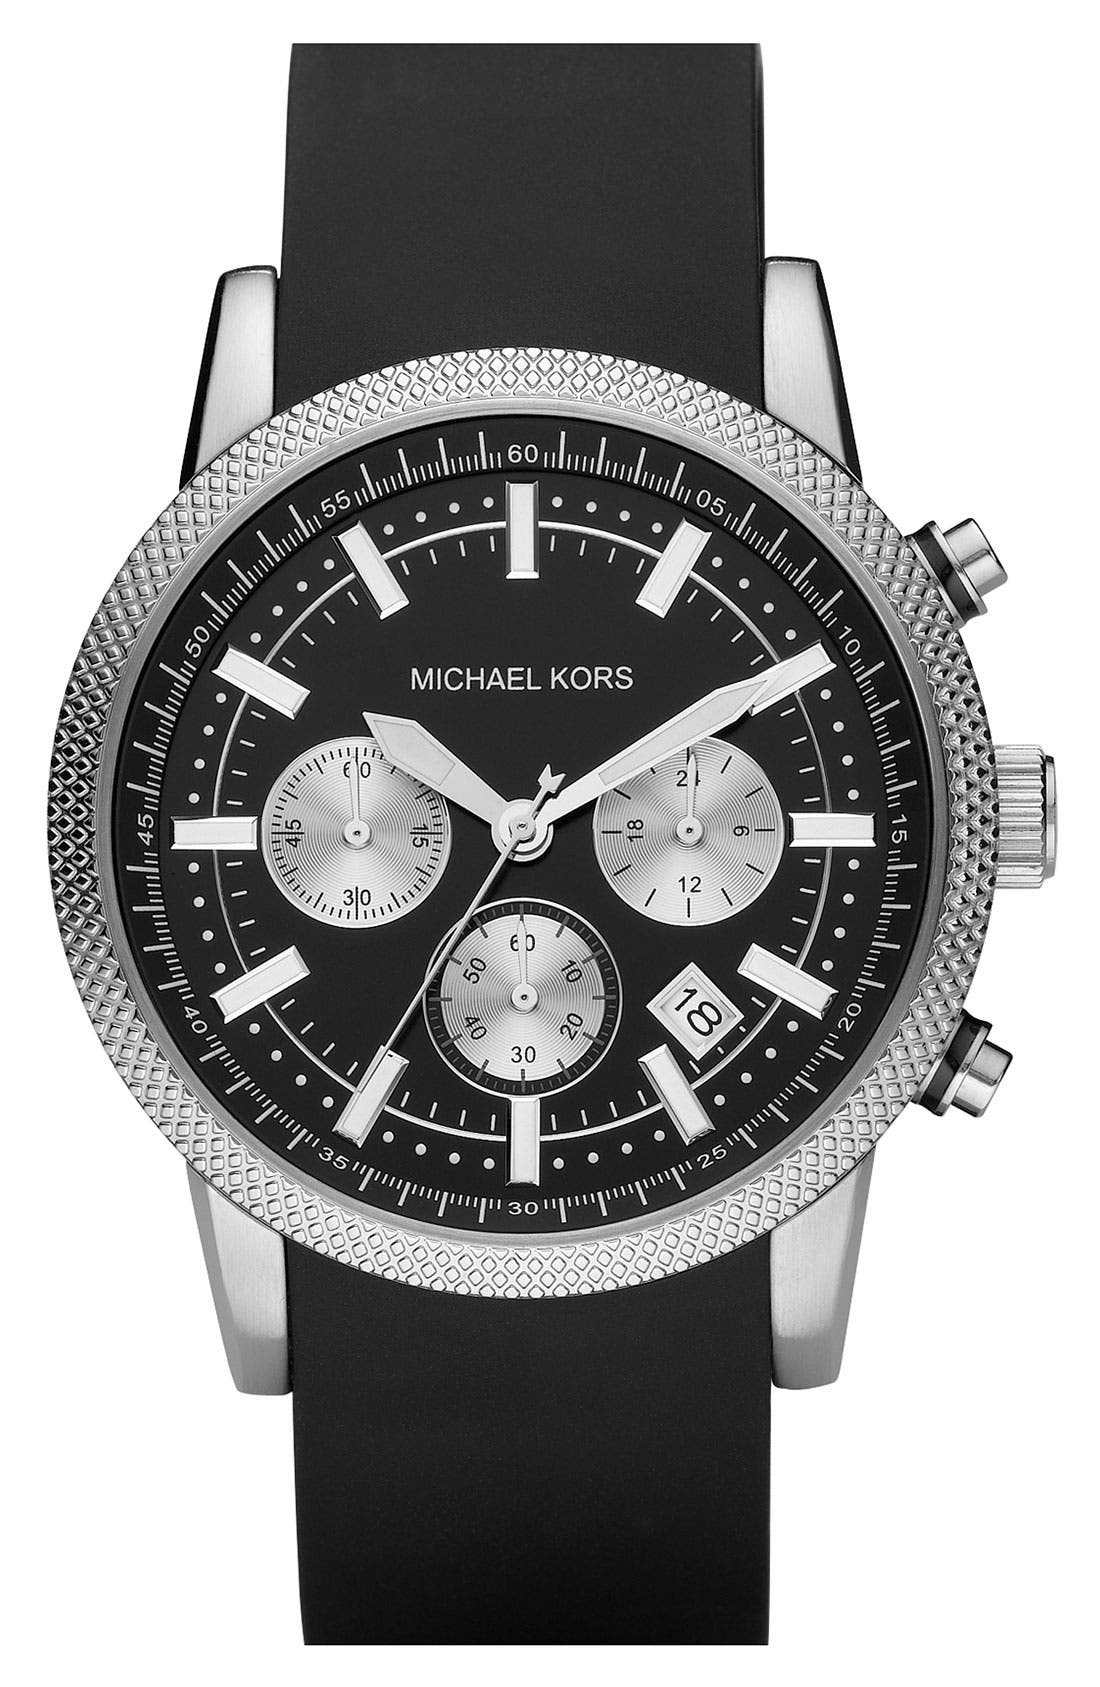 Main Image - Michael Kors 'Scout' Chronograph Watch, 43mm